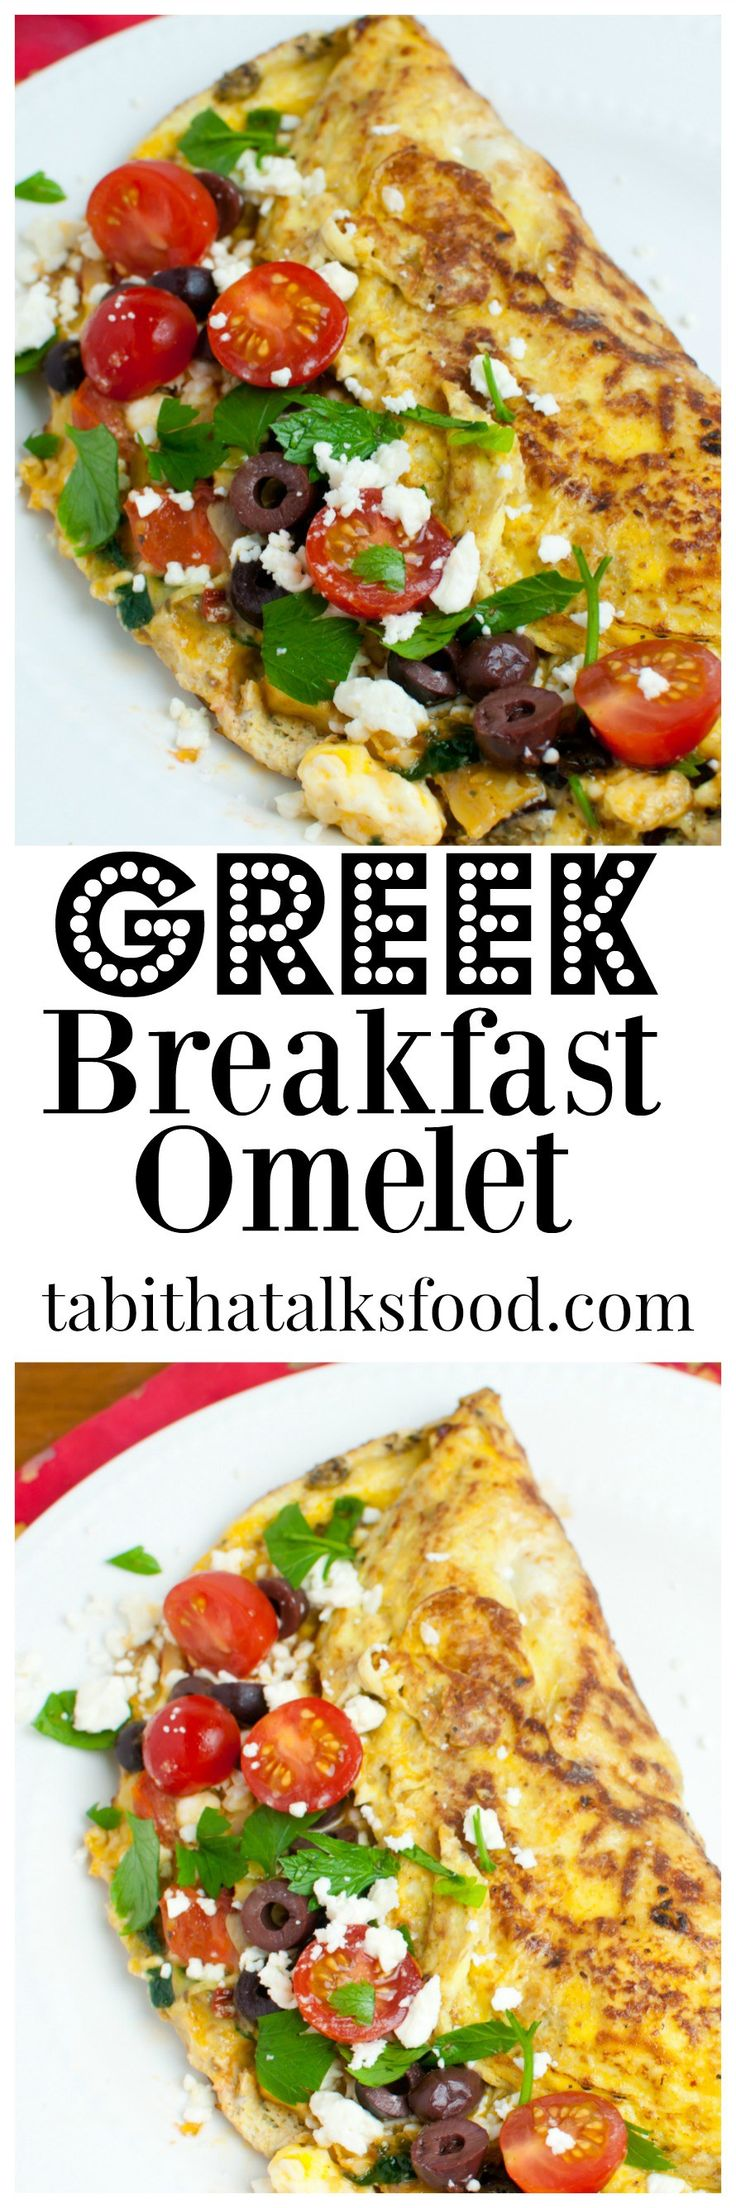 This easy Greek breakfast is made with feta cheese, spinach, artichoke, black olives and tomatoes. It's one of my favorites and takes no time!